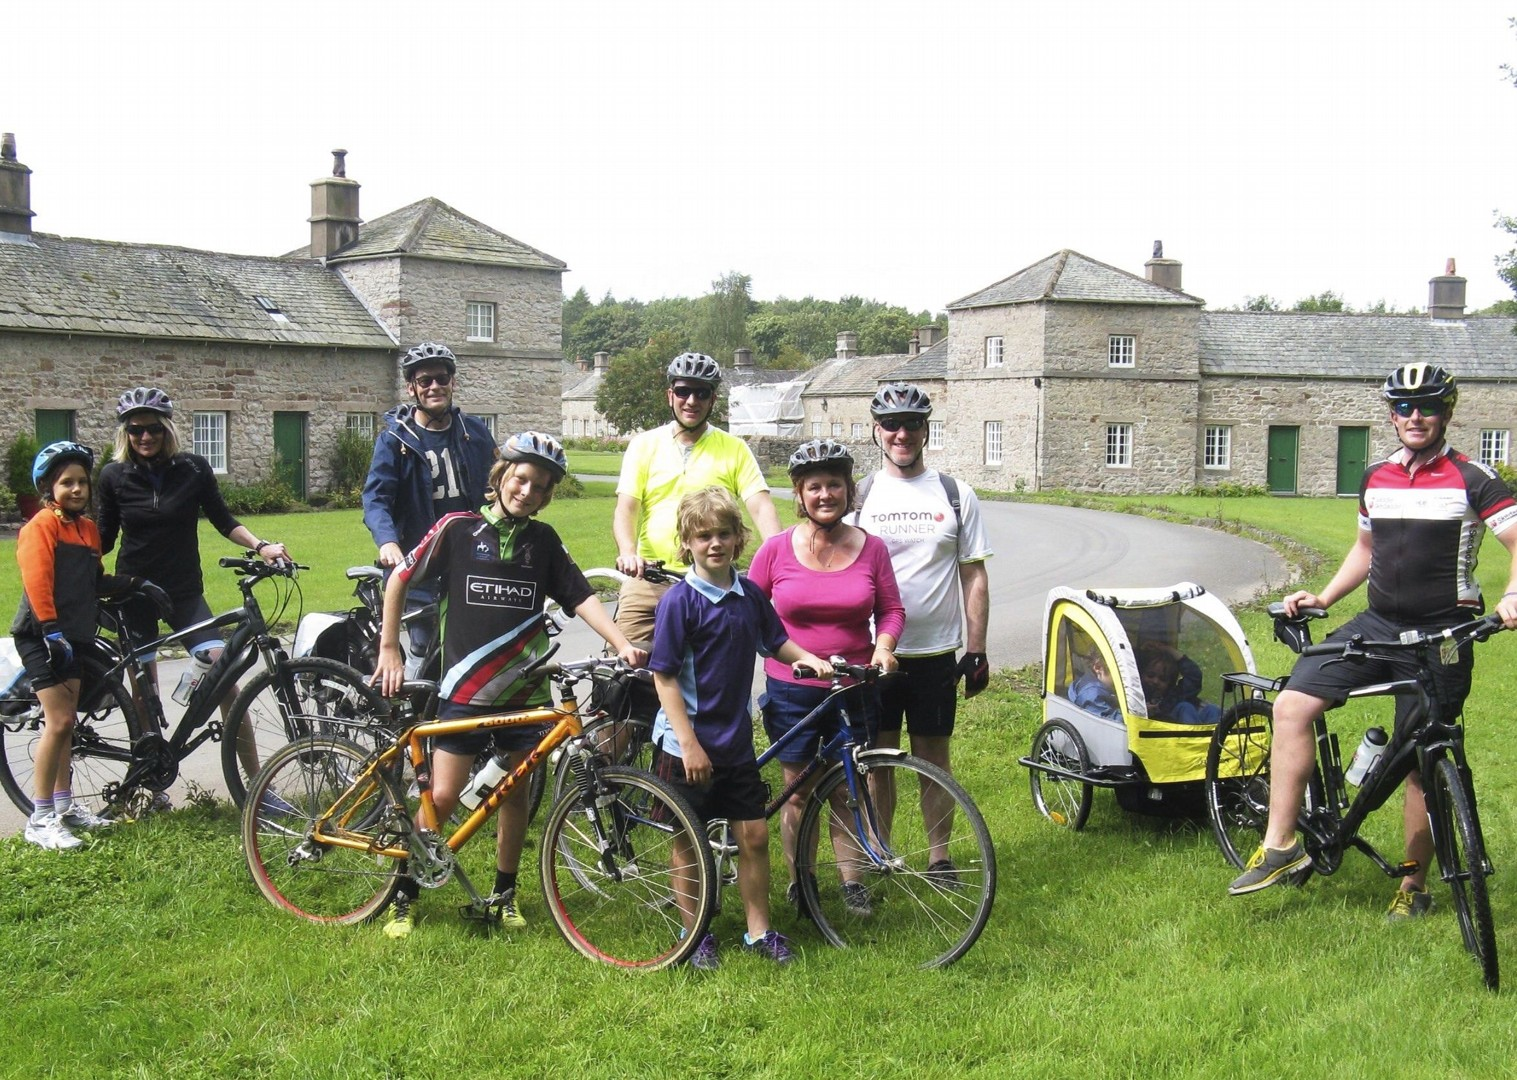 guided-group-family-bike-skills-uk.jpg - UK - Lake District - Bike Skills - Family Cycling